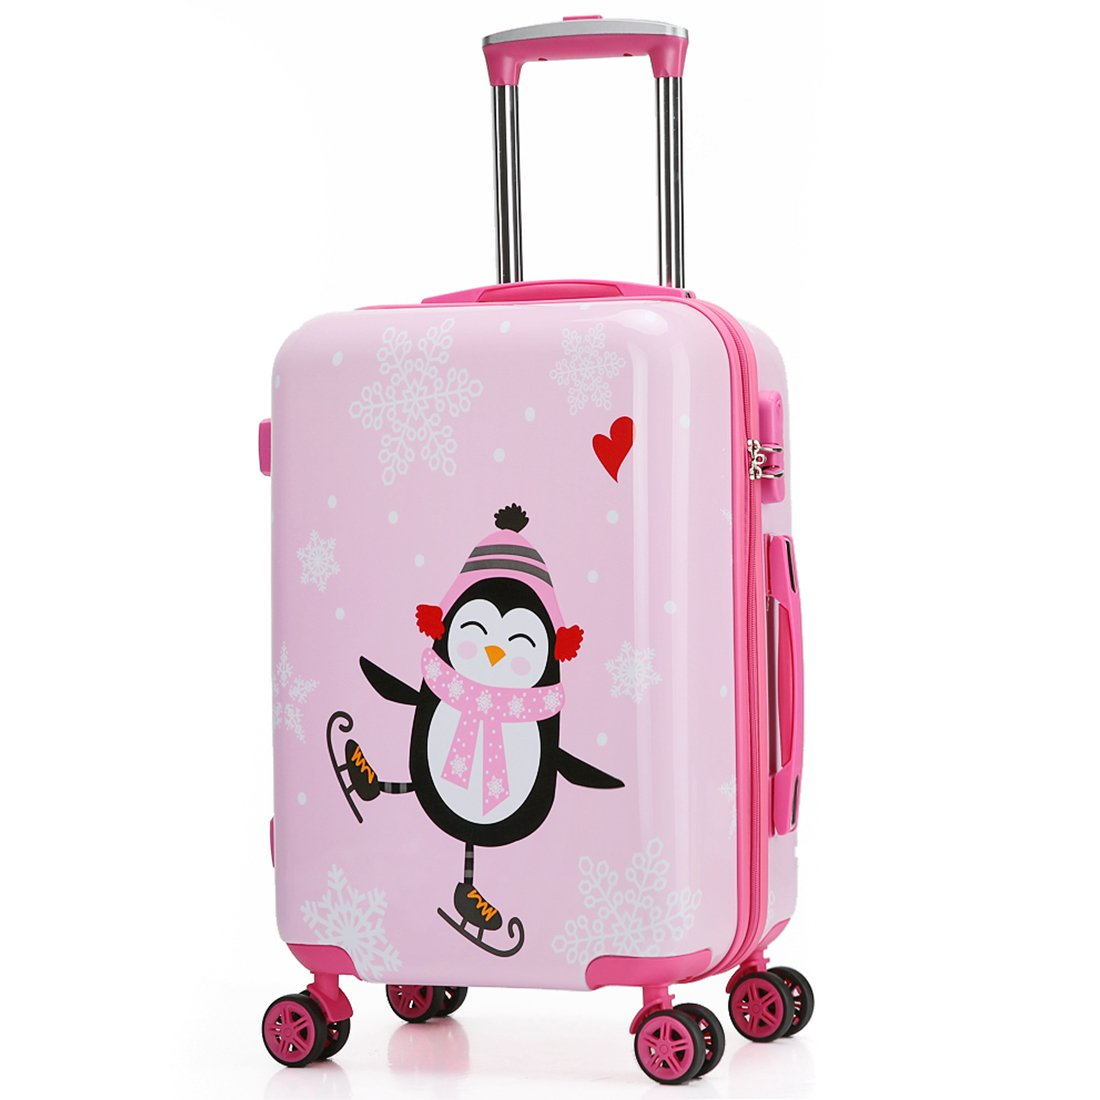 Kids Luggage Carry On Luggage With Spinner Wheels Toddlers Teenage Children Boys And Girls Travel Trolley Case (20inch, Pink scarf penguin) by TOKERS